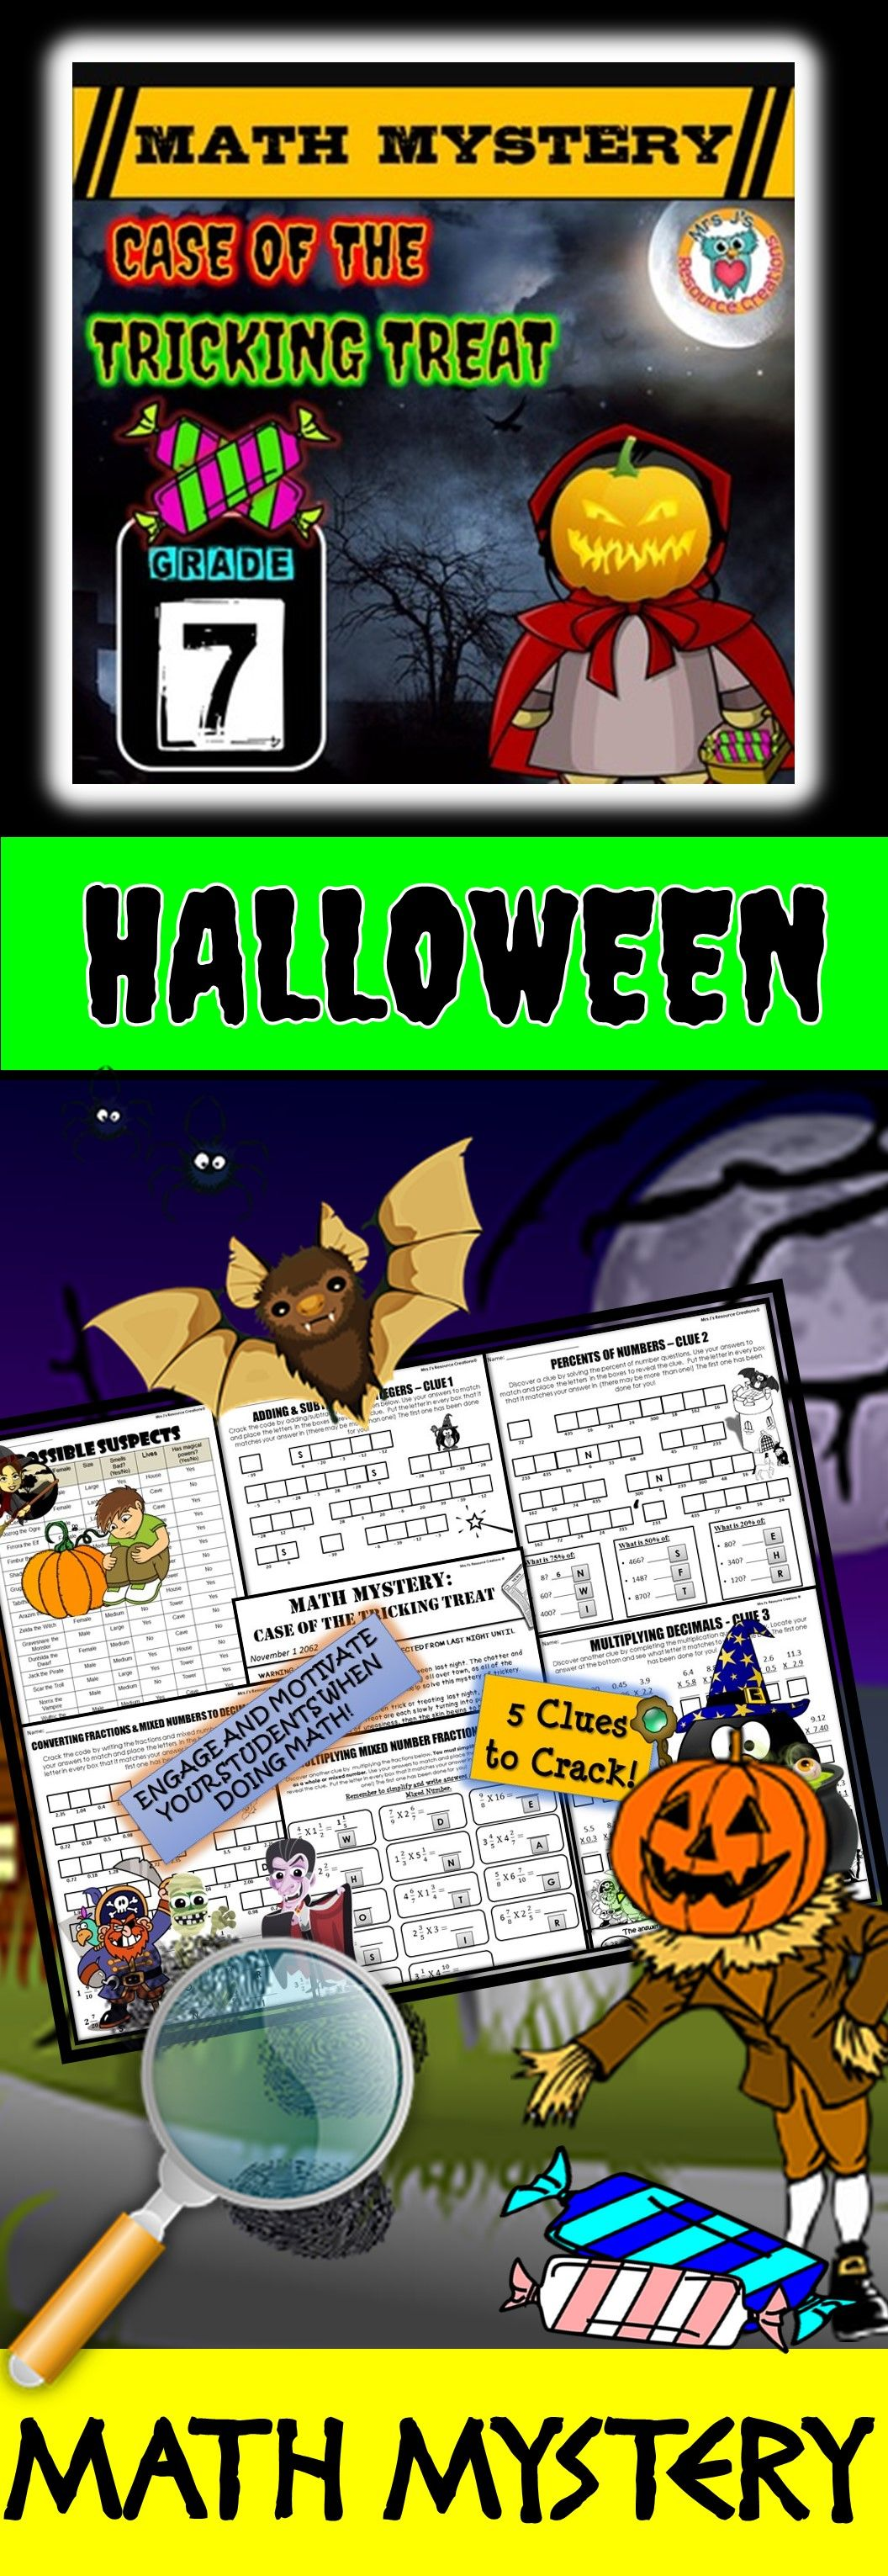 7th Grade Halloween Activity Halloween Math Mystery Tricking Treat